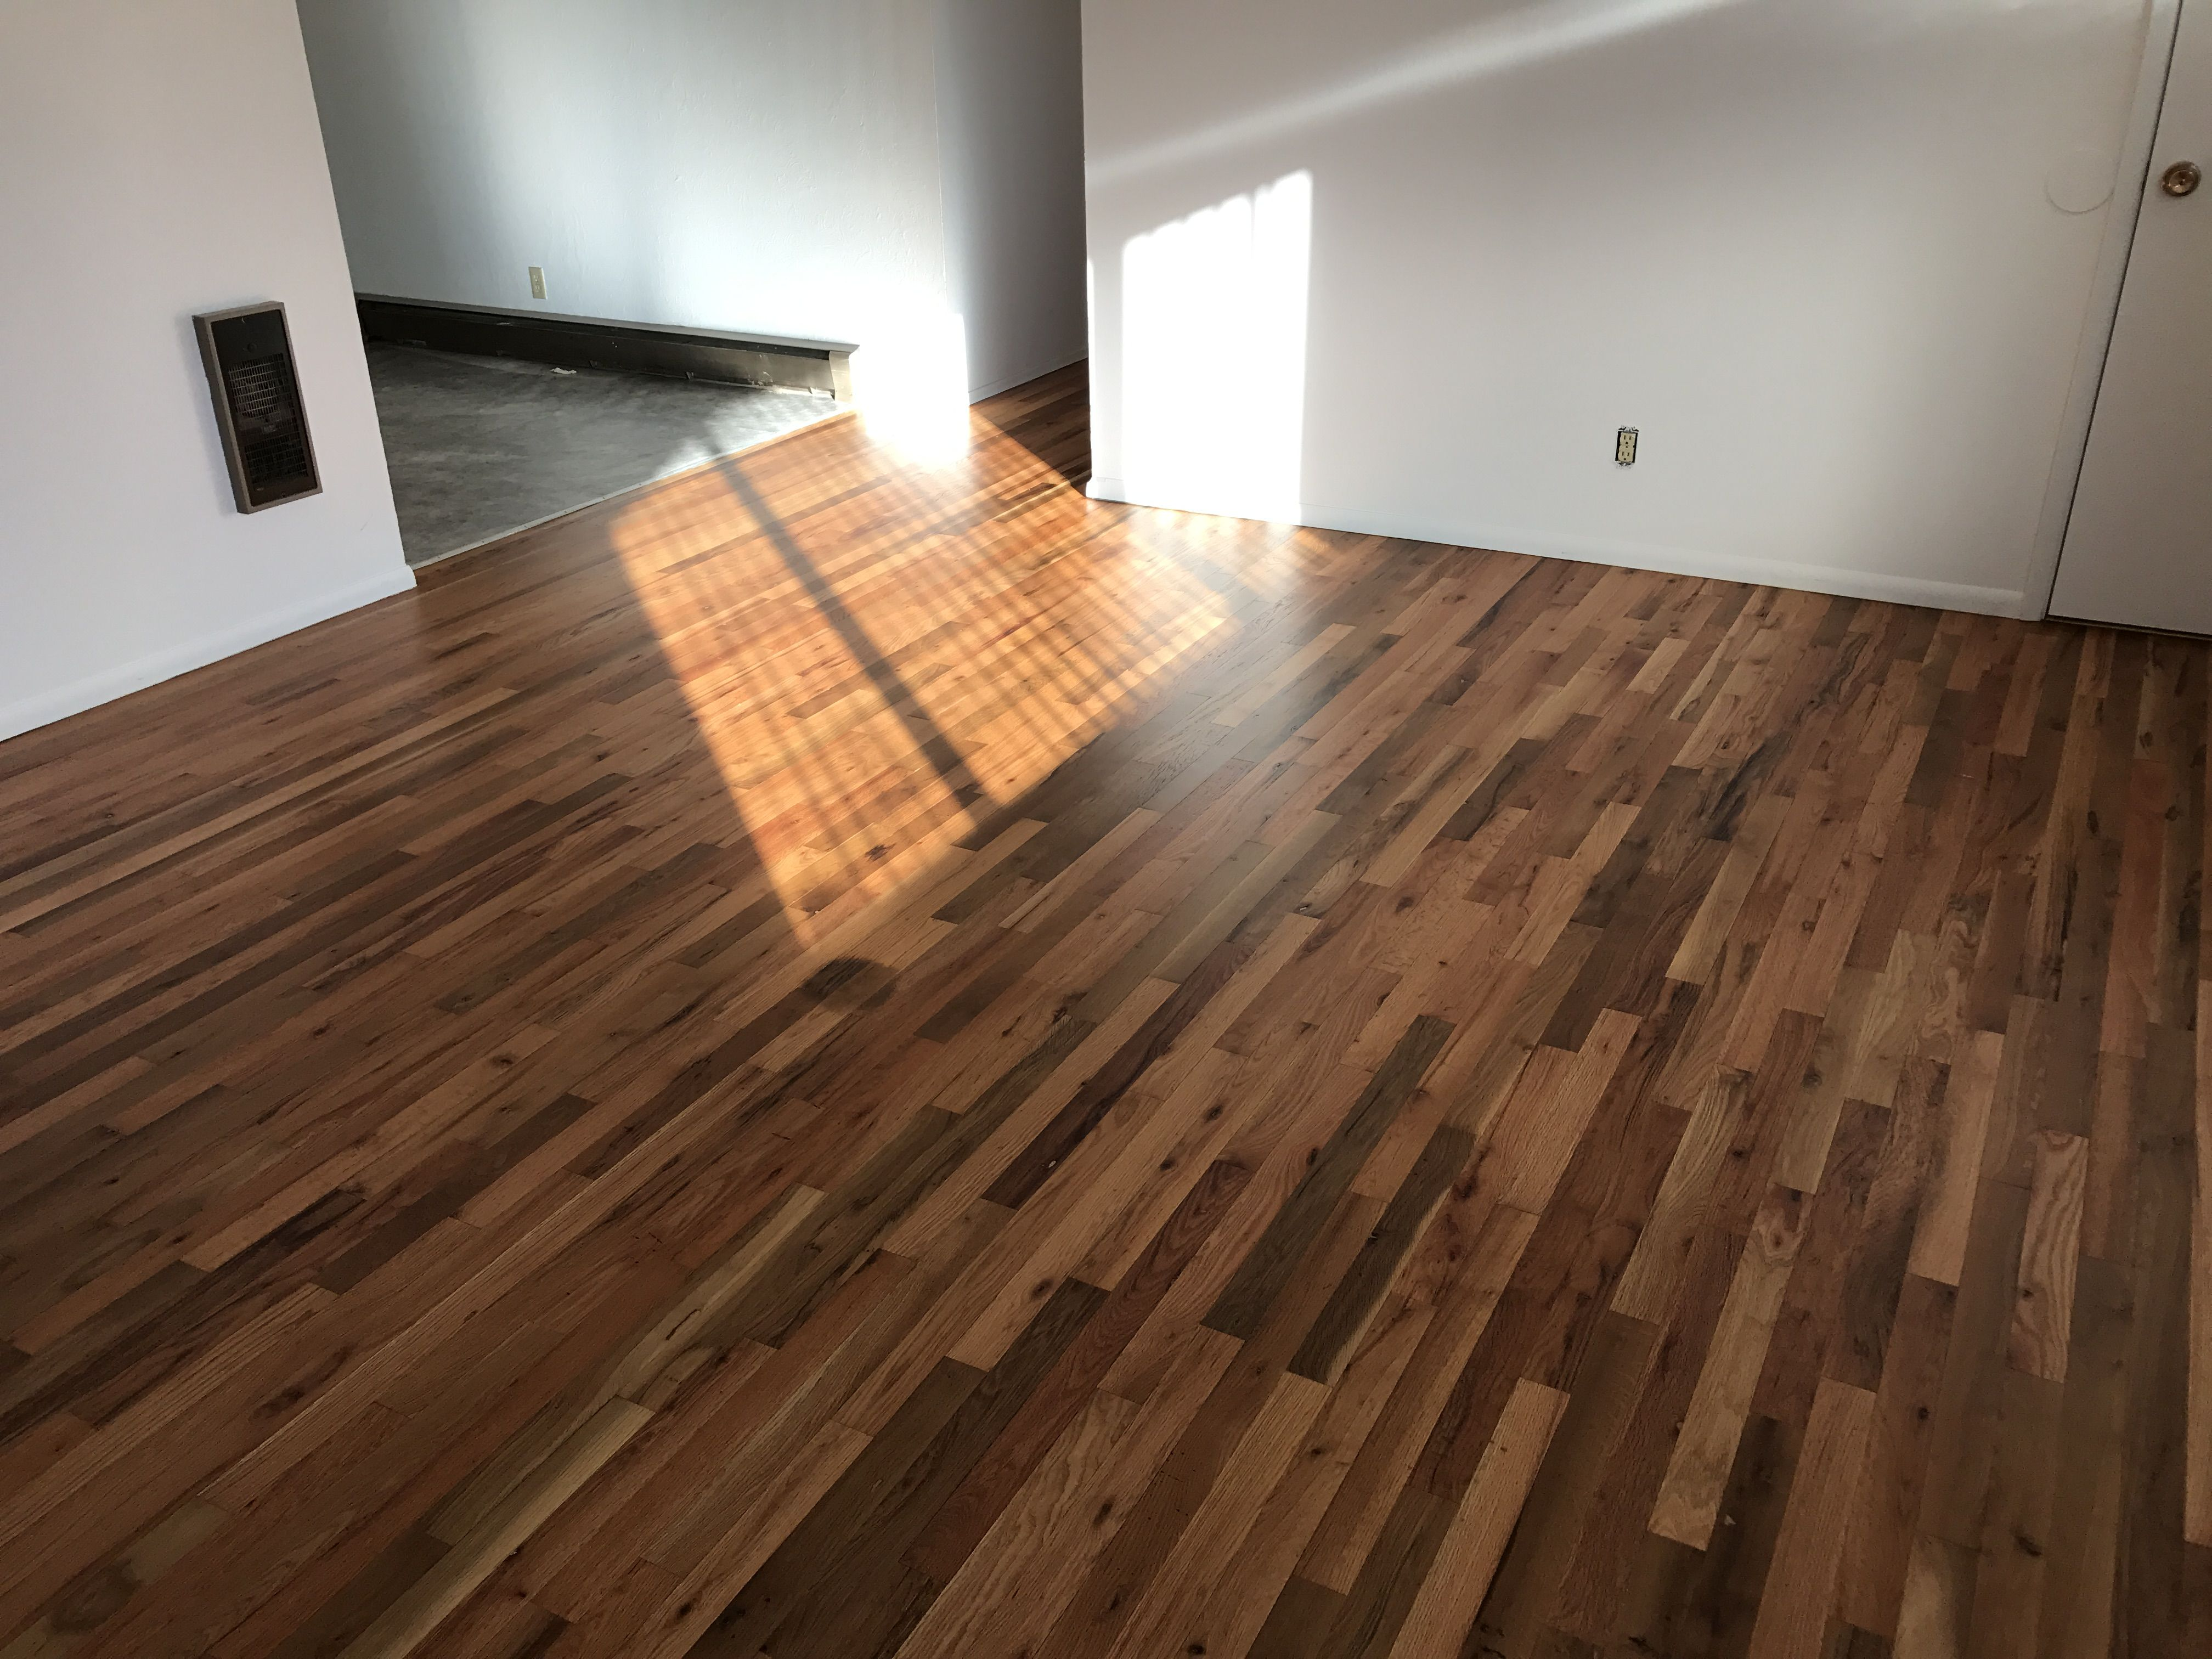 Matte finish on top of refinished red oak flooring